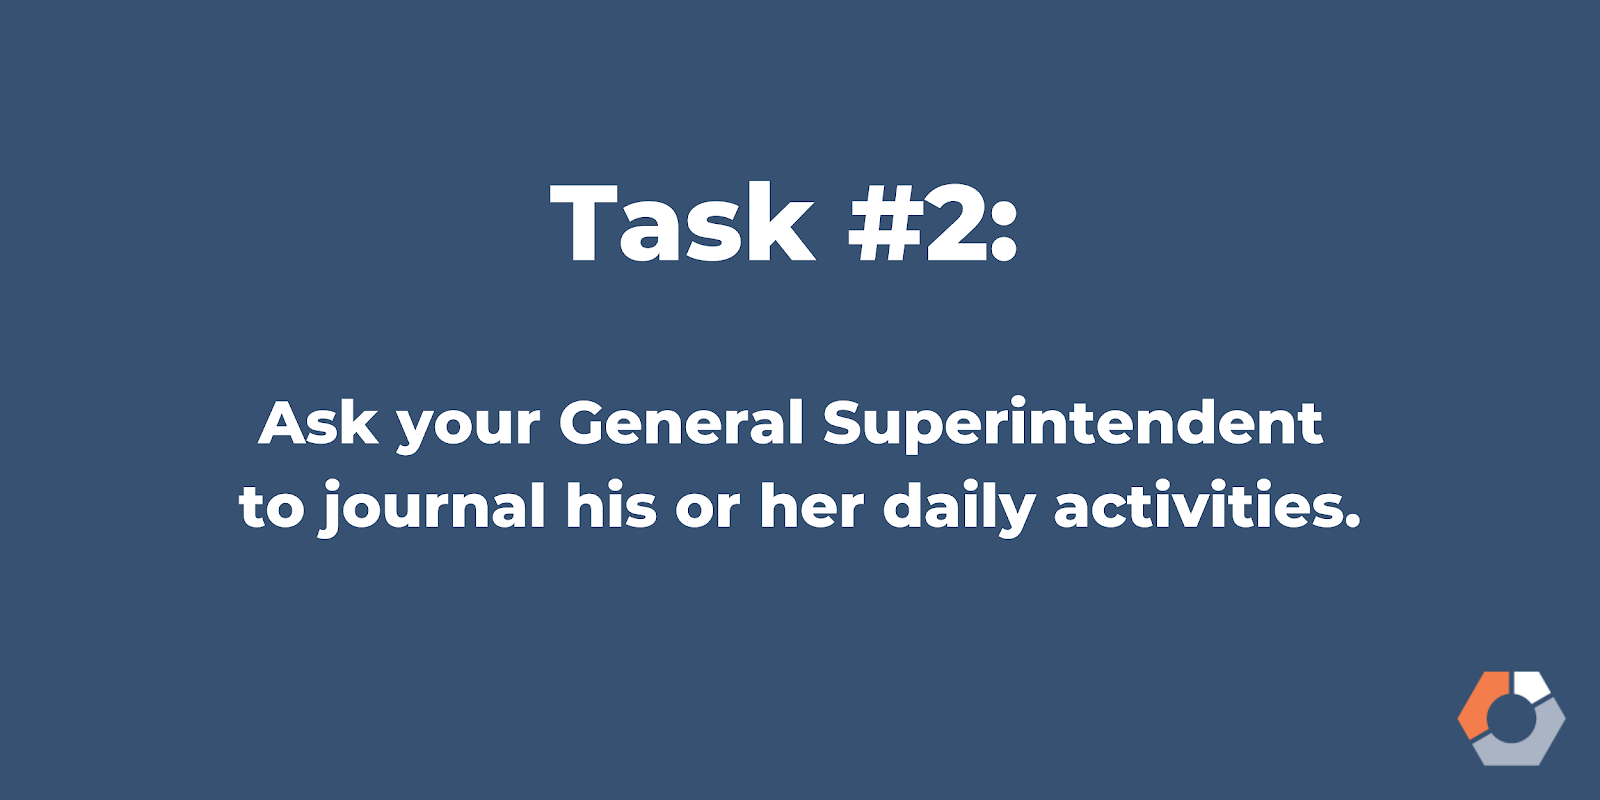 Ask your General Superintendent to journey his or her daily activities.